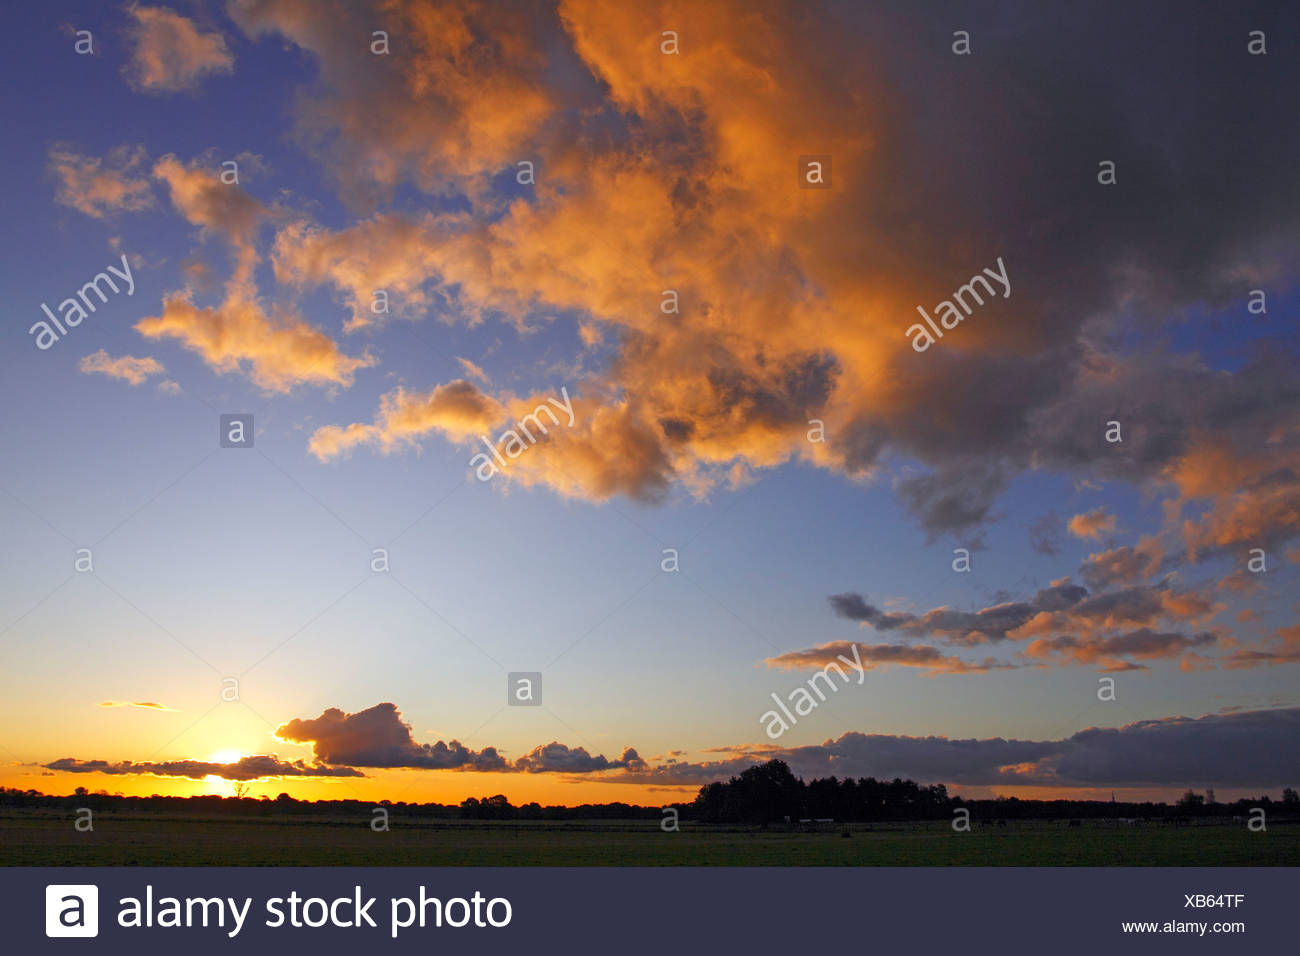 Dramatic sky with clouds illuminated from below by the late evening sun at sunset, landscape in Oberalsterniederung Nature Rese - Stock Image